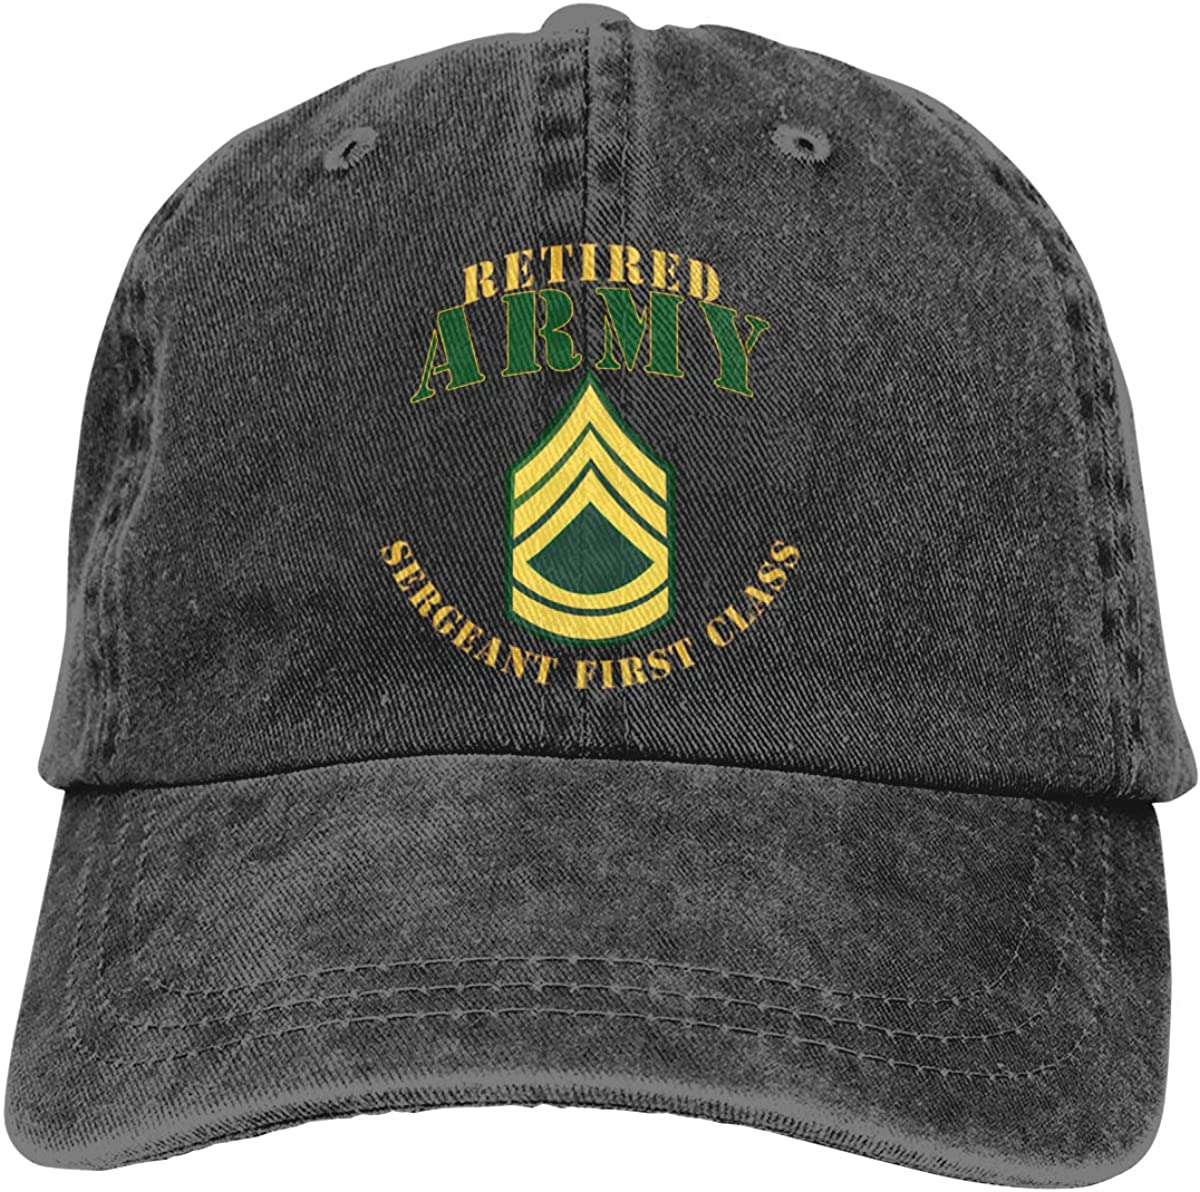 Army SFC Retired Dad Hat Denim Baseball Cap Adjustable Polo Trucker Unisex Style Headwear